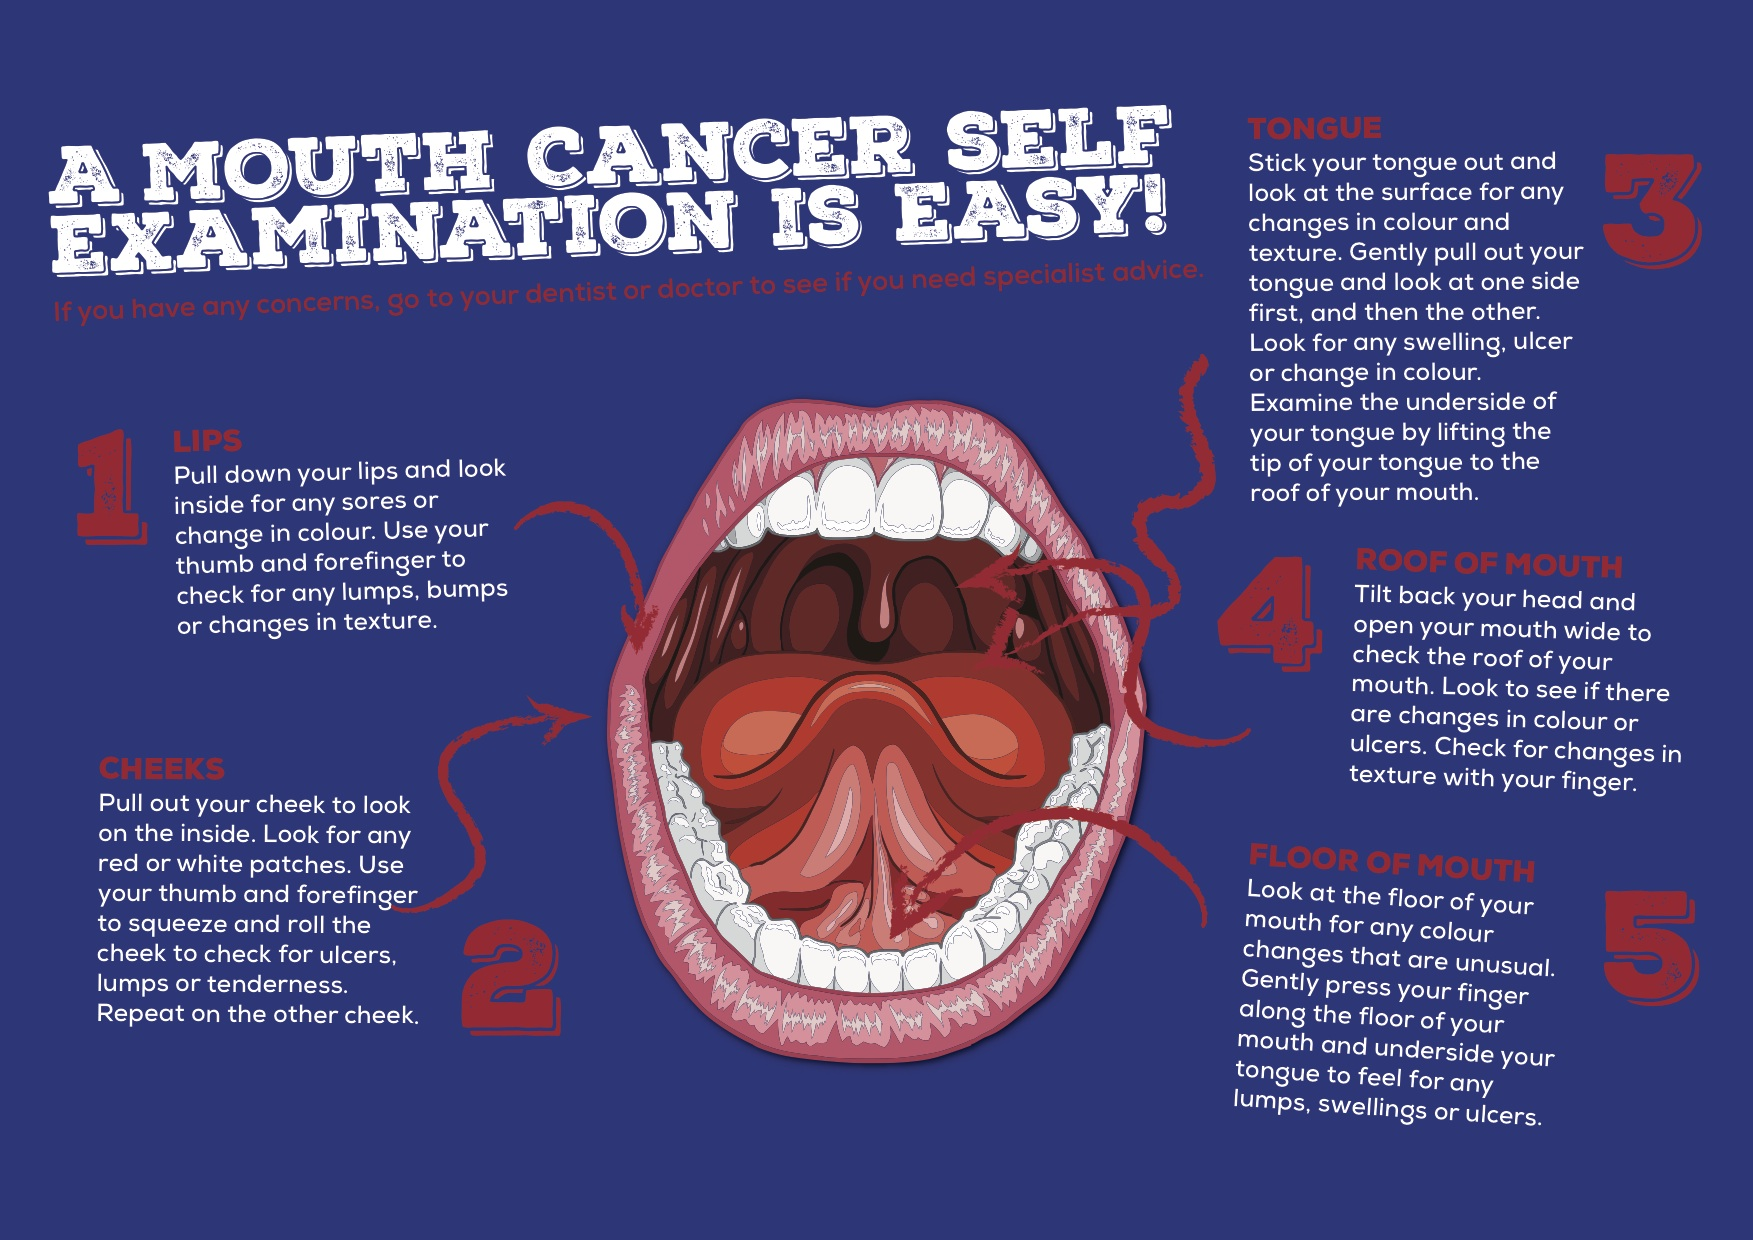 We Should All Regularly Check The Inside Of Our Mouths For Any Lumps,  Bumps, Red Or White Patches, Sores Or Ulcers. You Canu0027t Always Feel These  ...